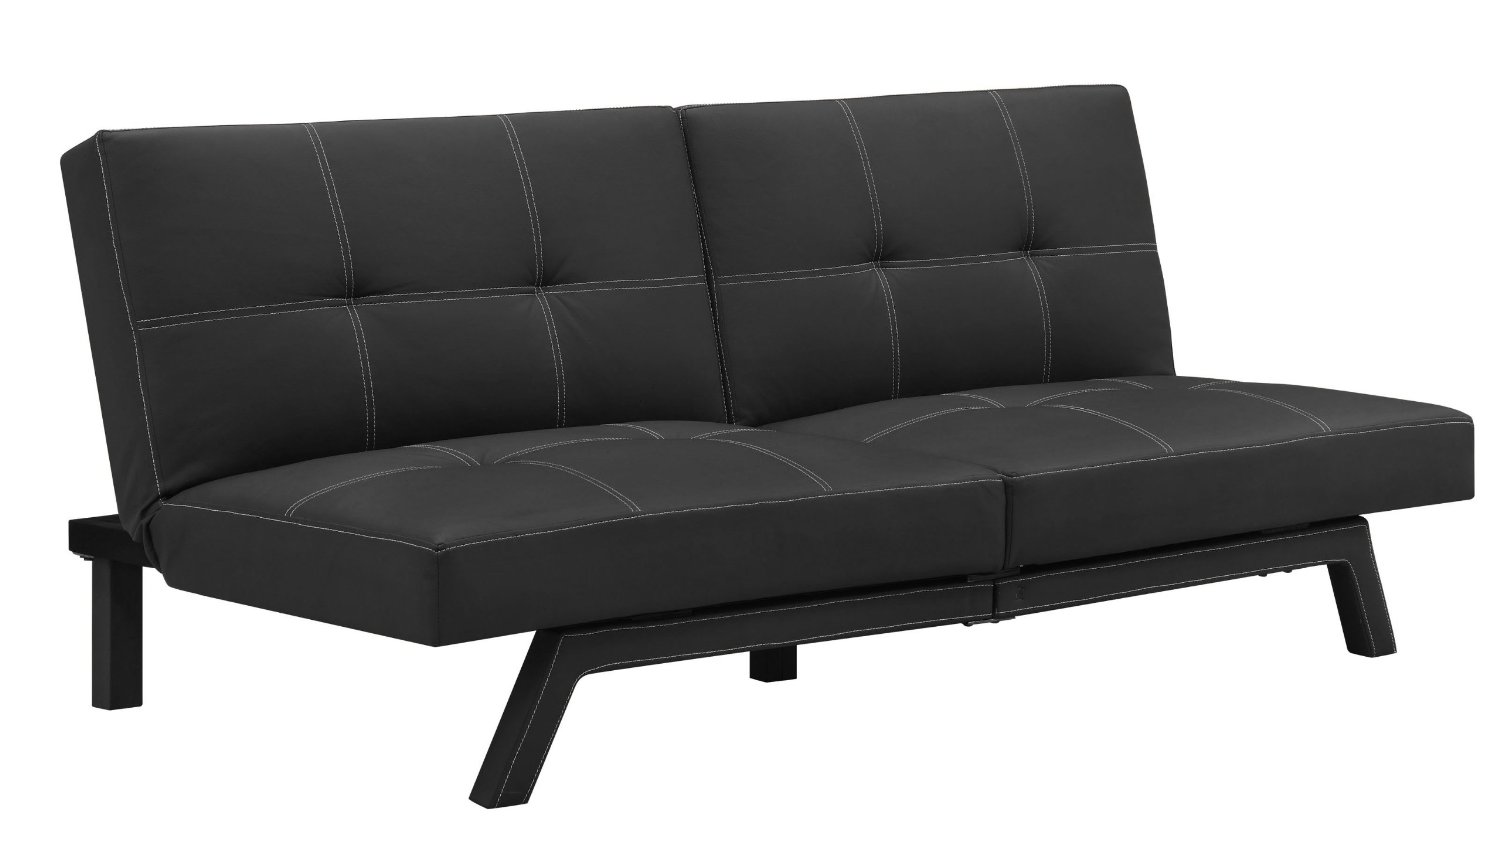 Buy cheap sofa cheap modern sofa for Buy a cheap couch